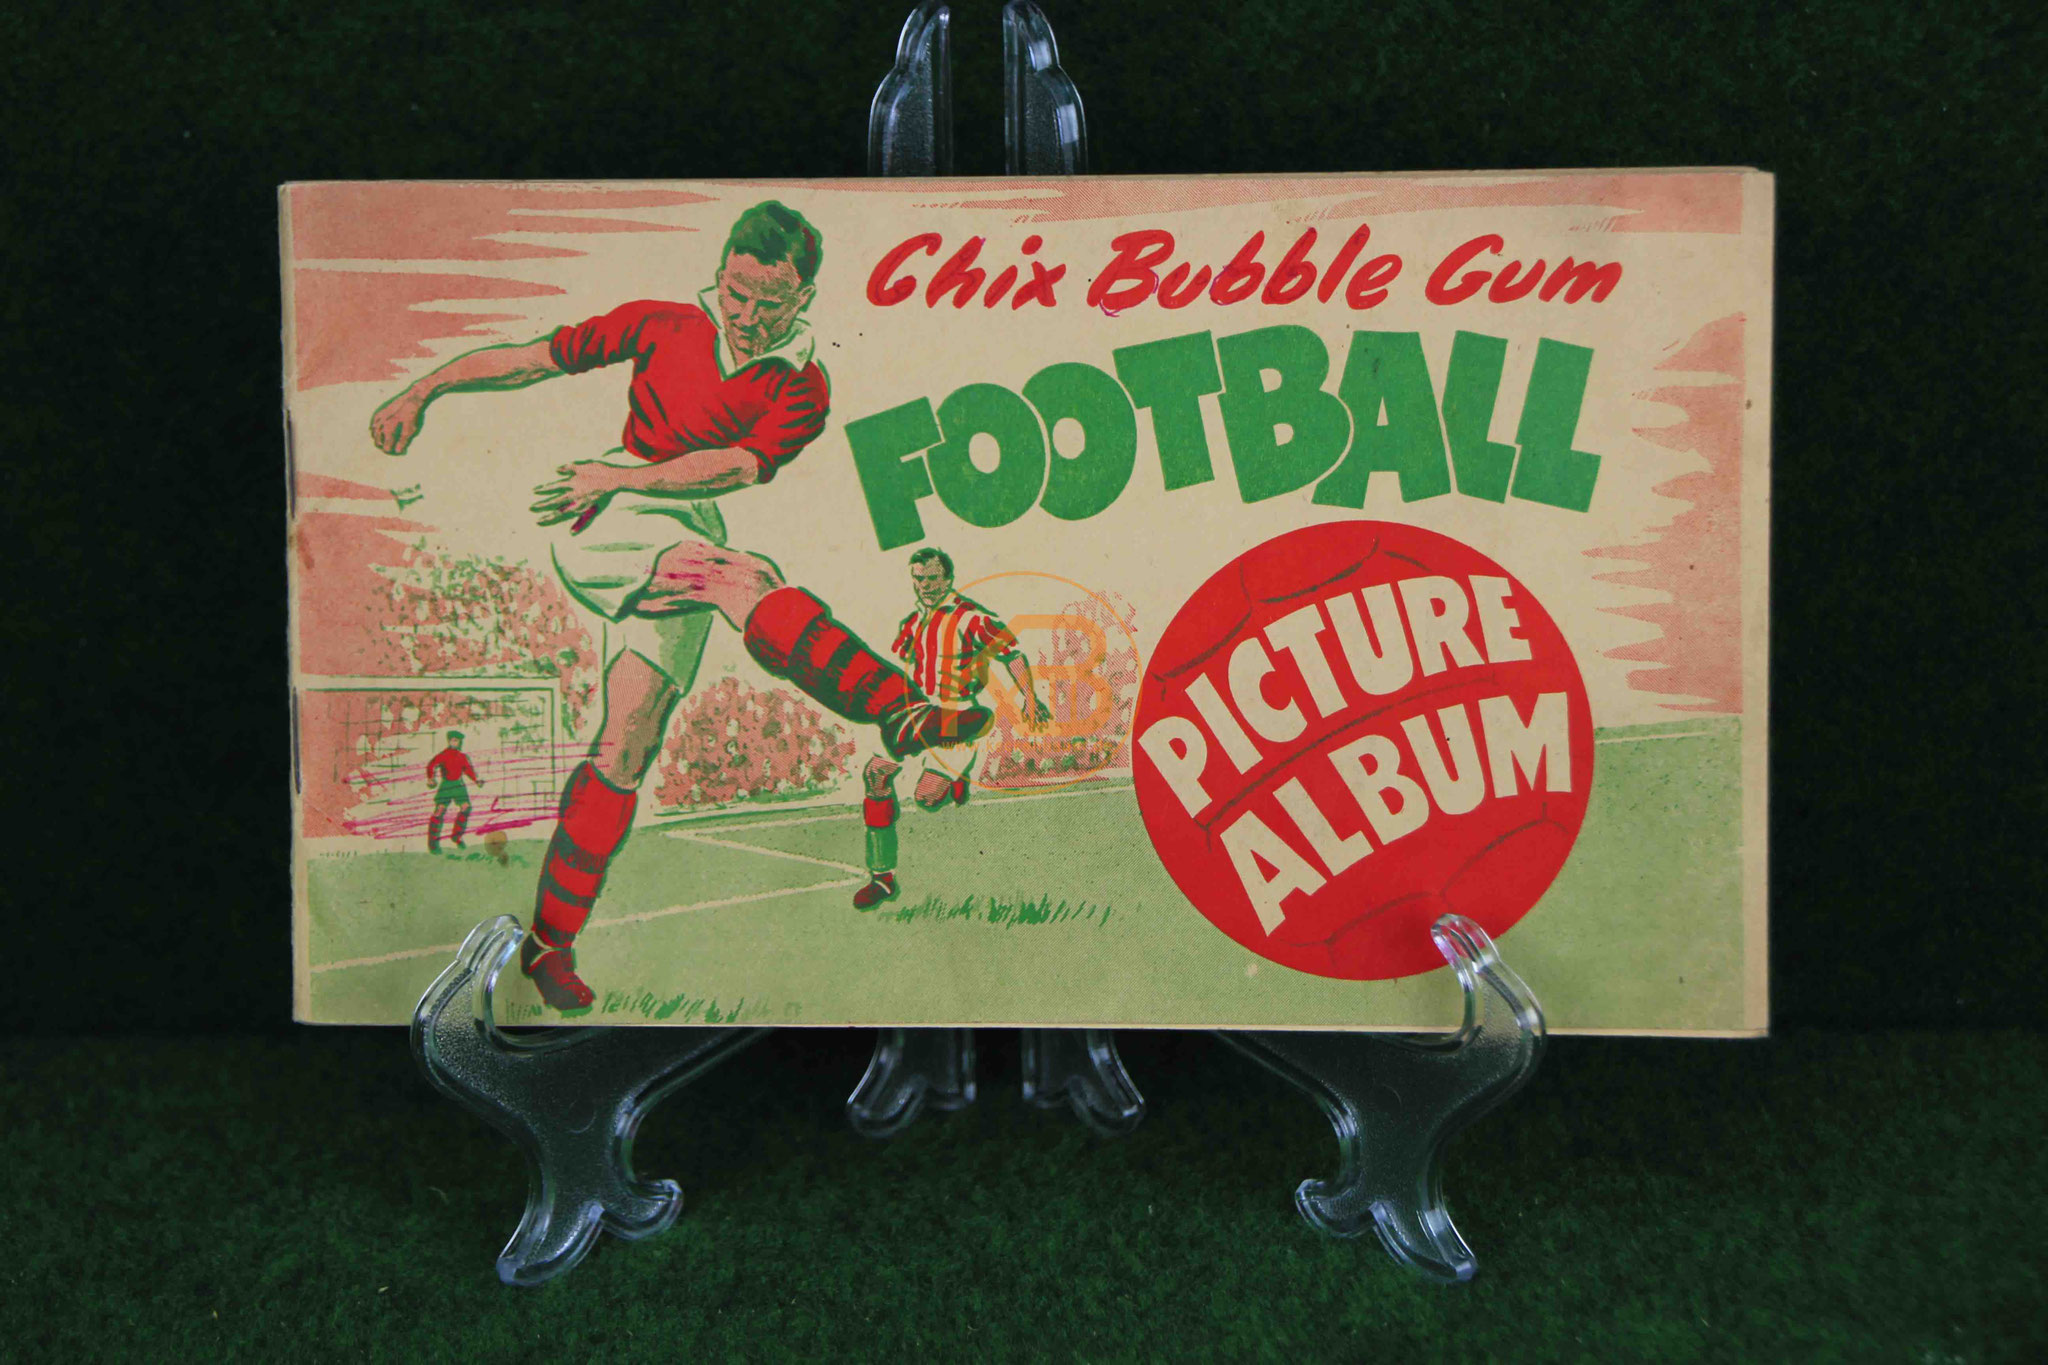 Sammelalbum Chic Bubble Gum Football Picture Album aus den 1950er Jahren.